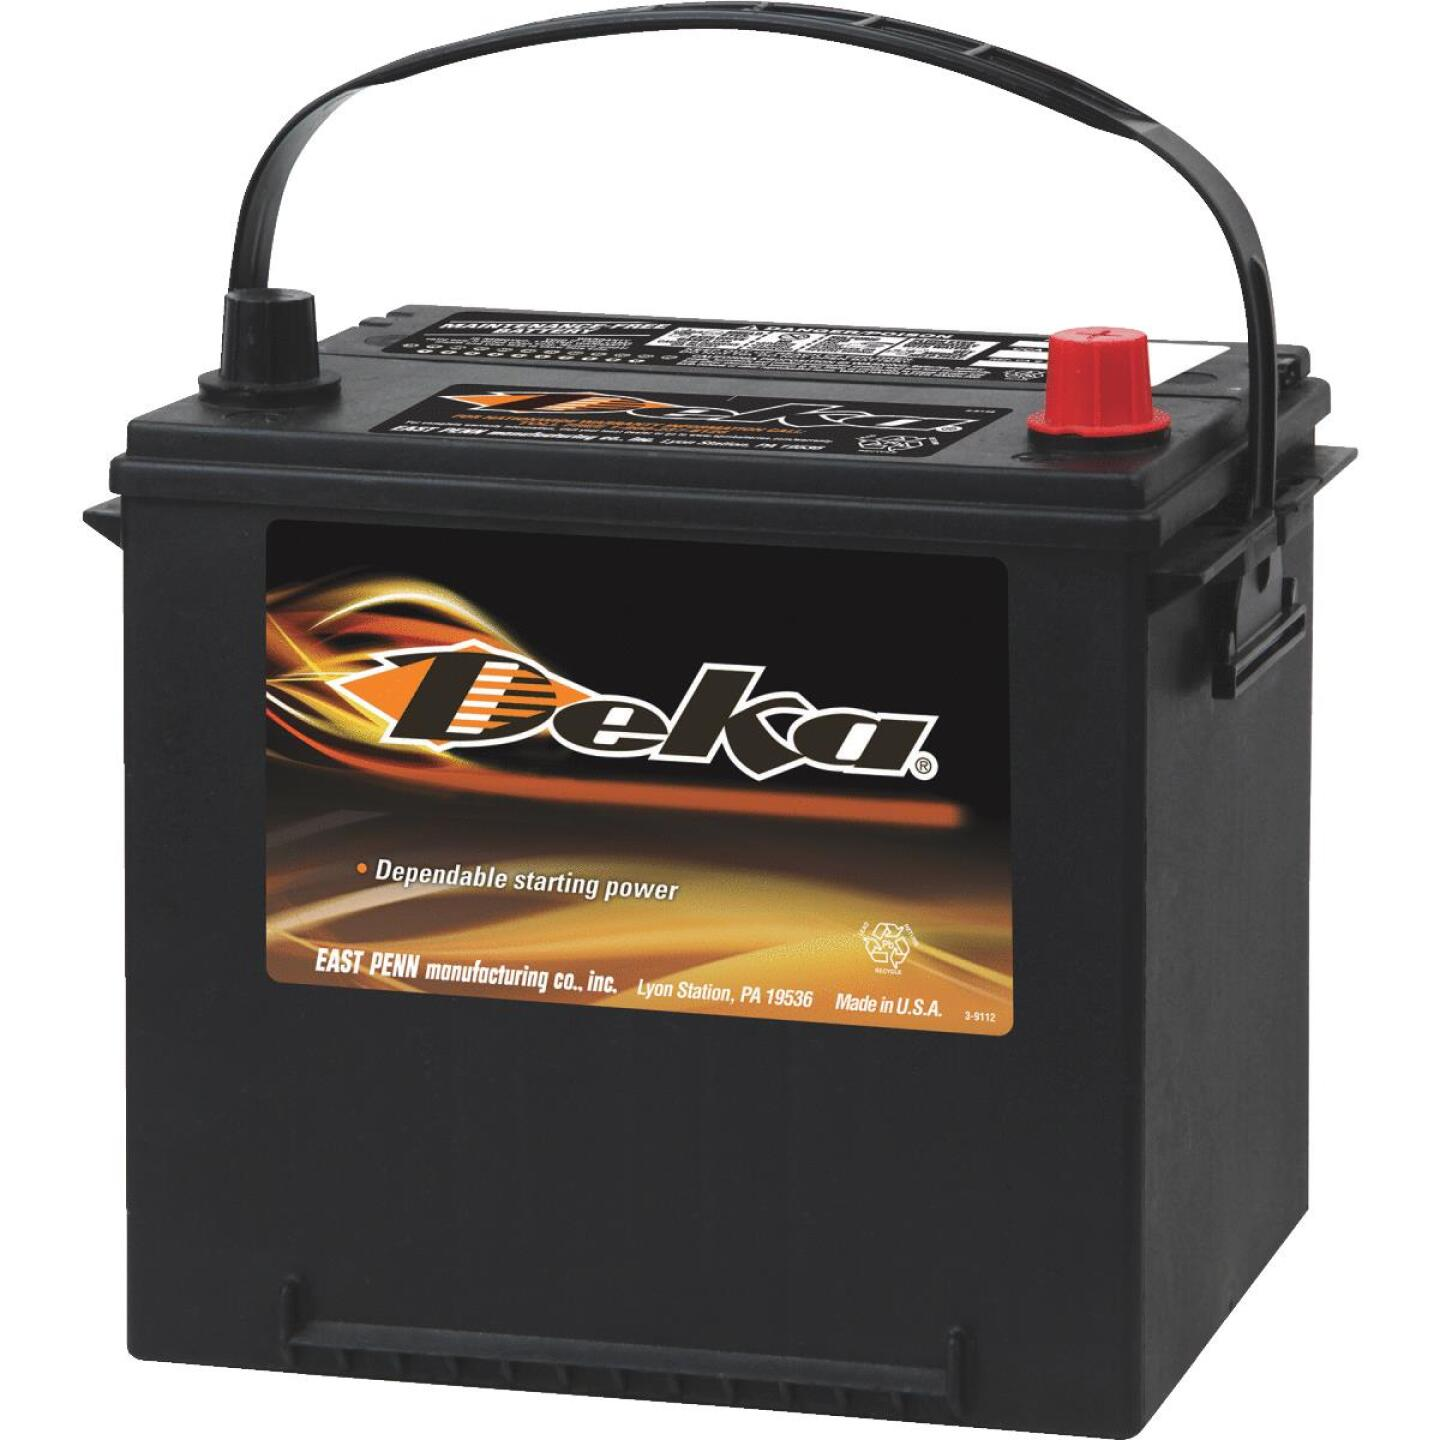 Deka Premium 12-Volt 550 CCA Automotive Battery, Top Post Right Front Positive Terminal Image 1